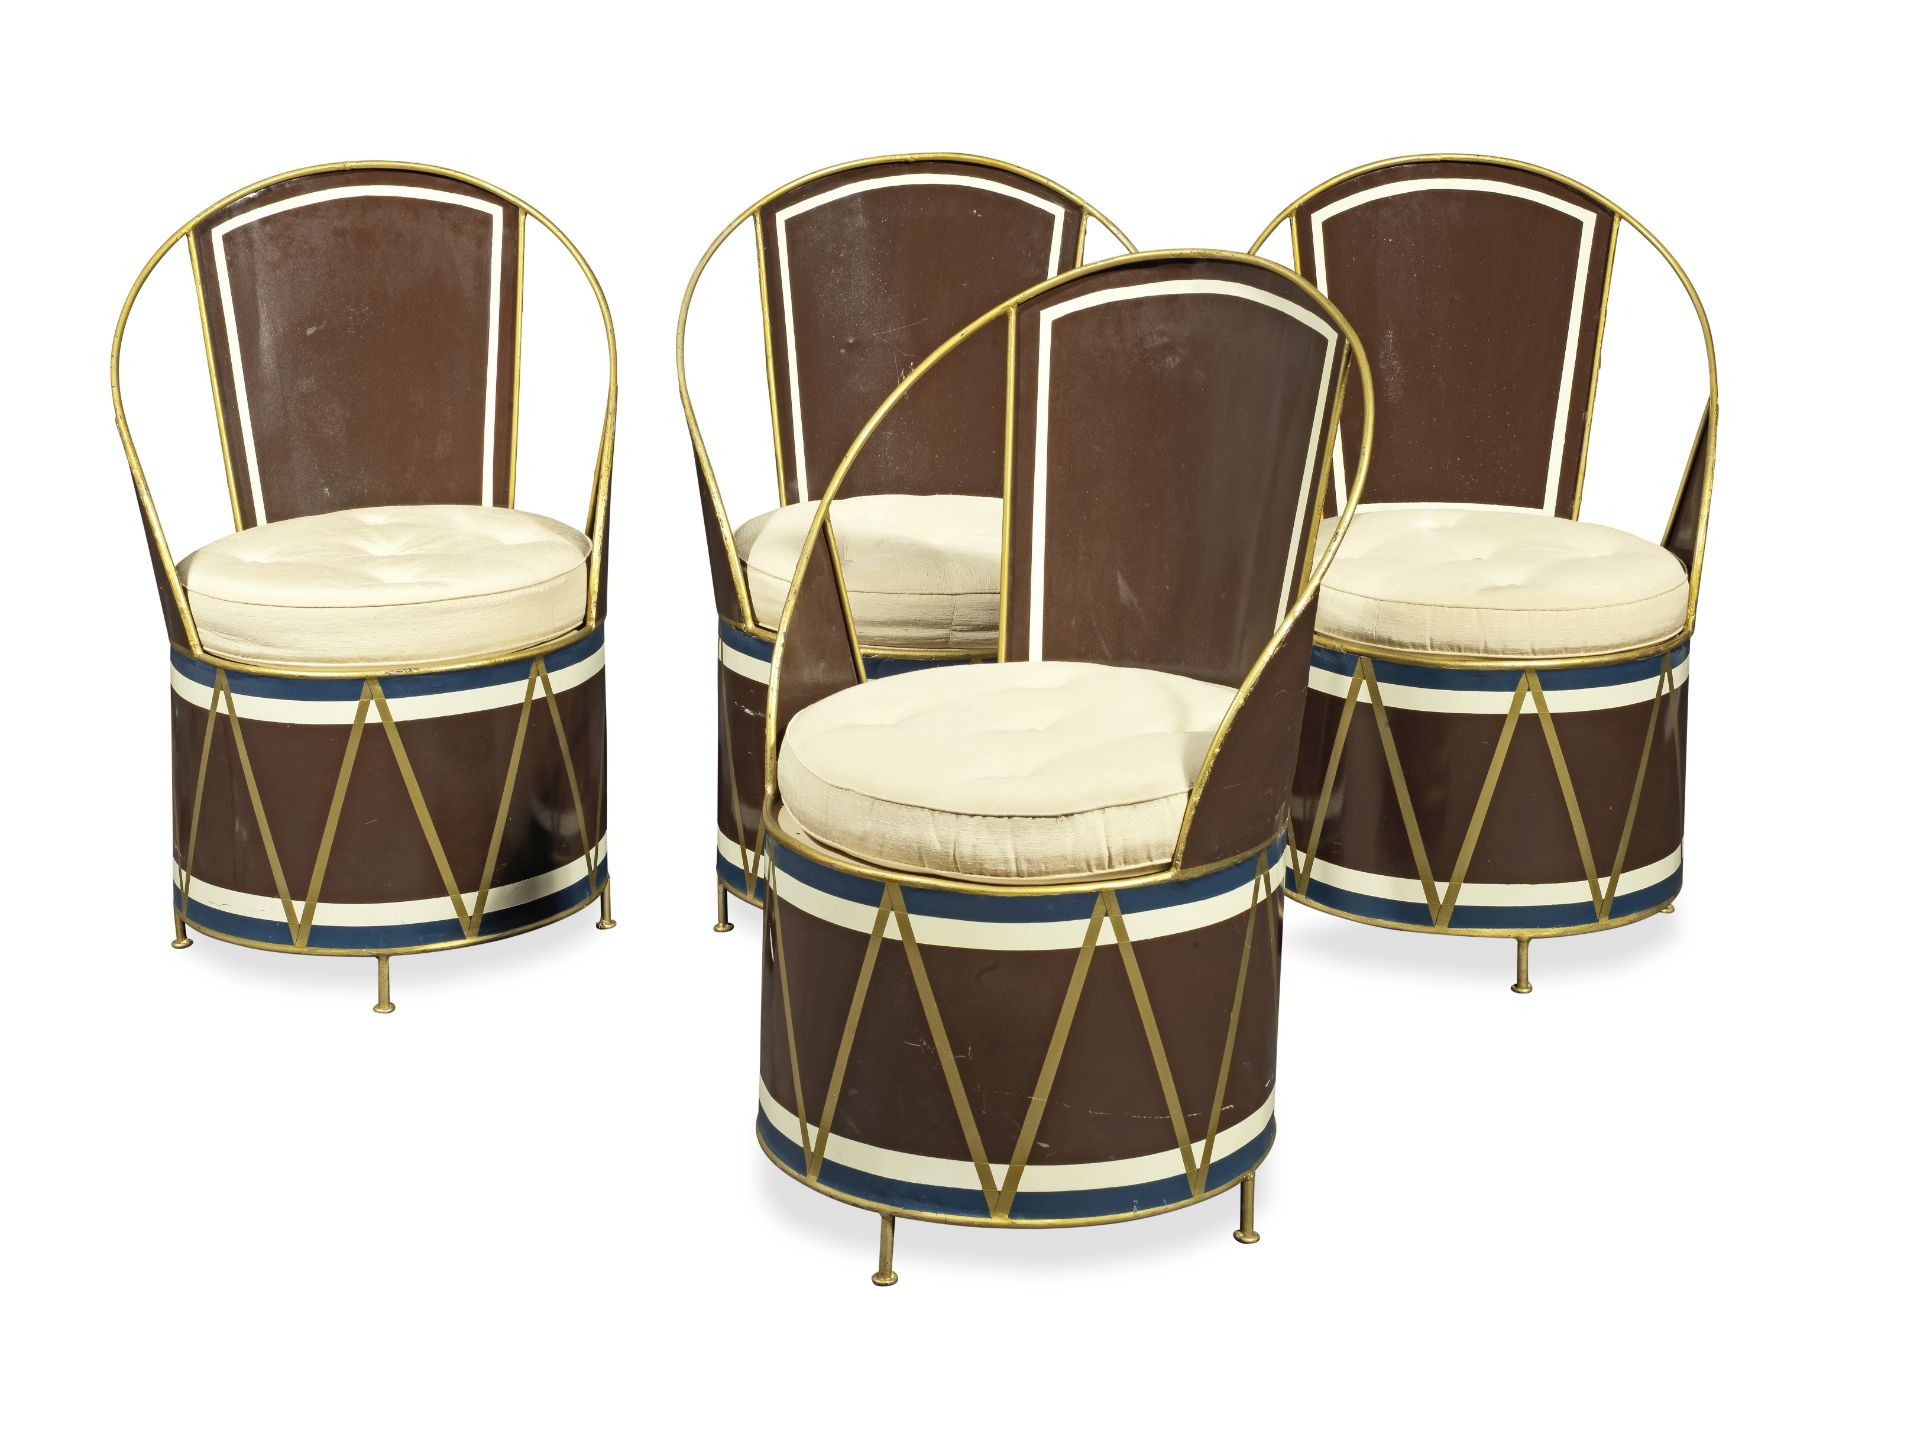 A set of four tole peinte 'drum' chairs after the model by Cecil Beaton (4) - Image 3 of 3